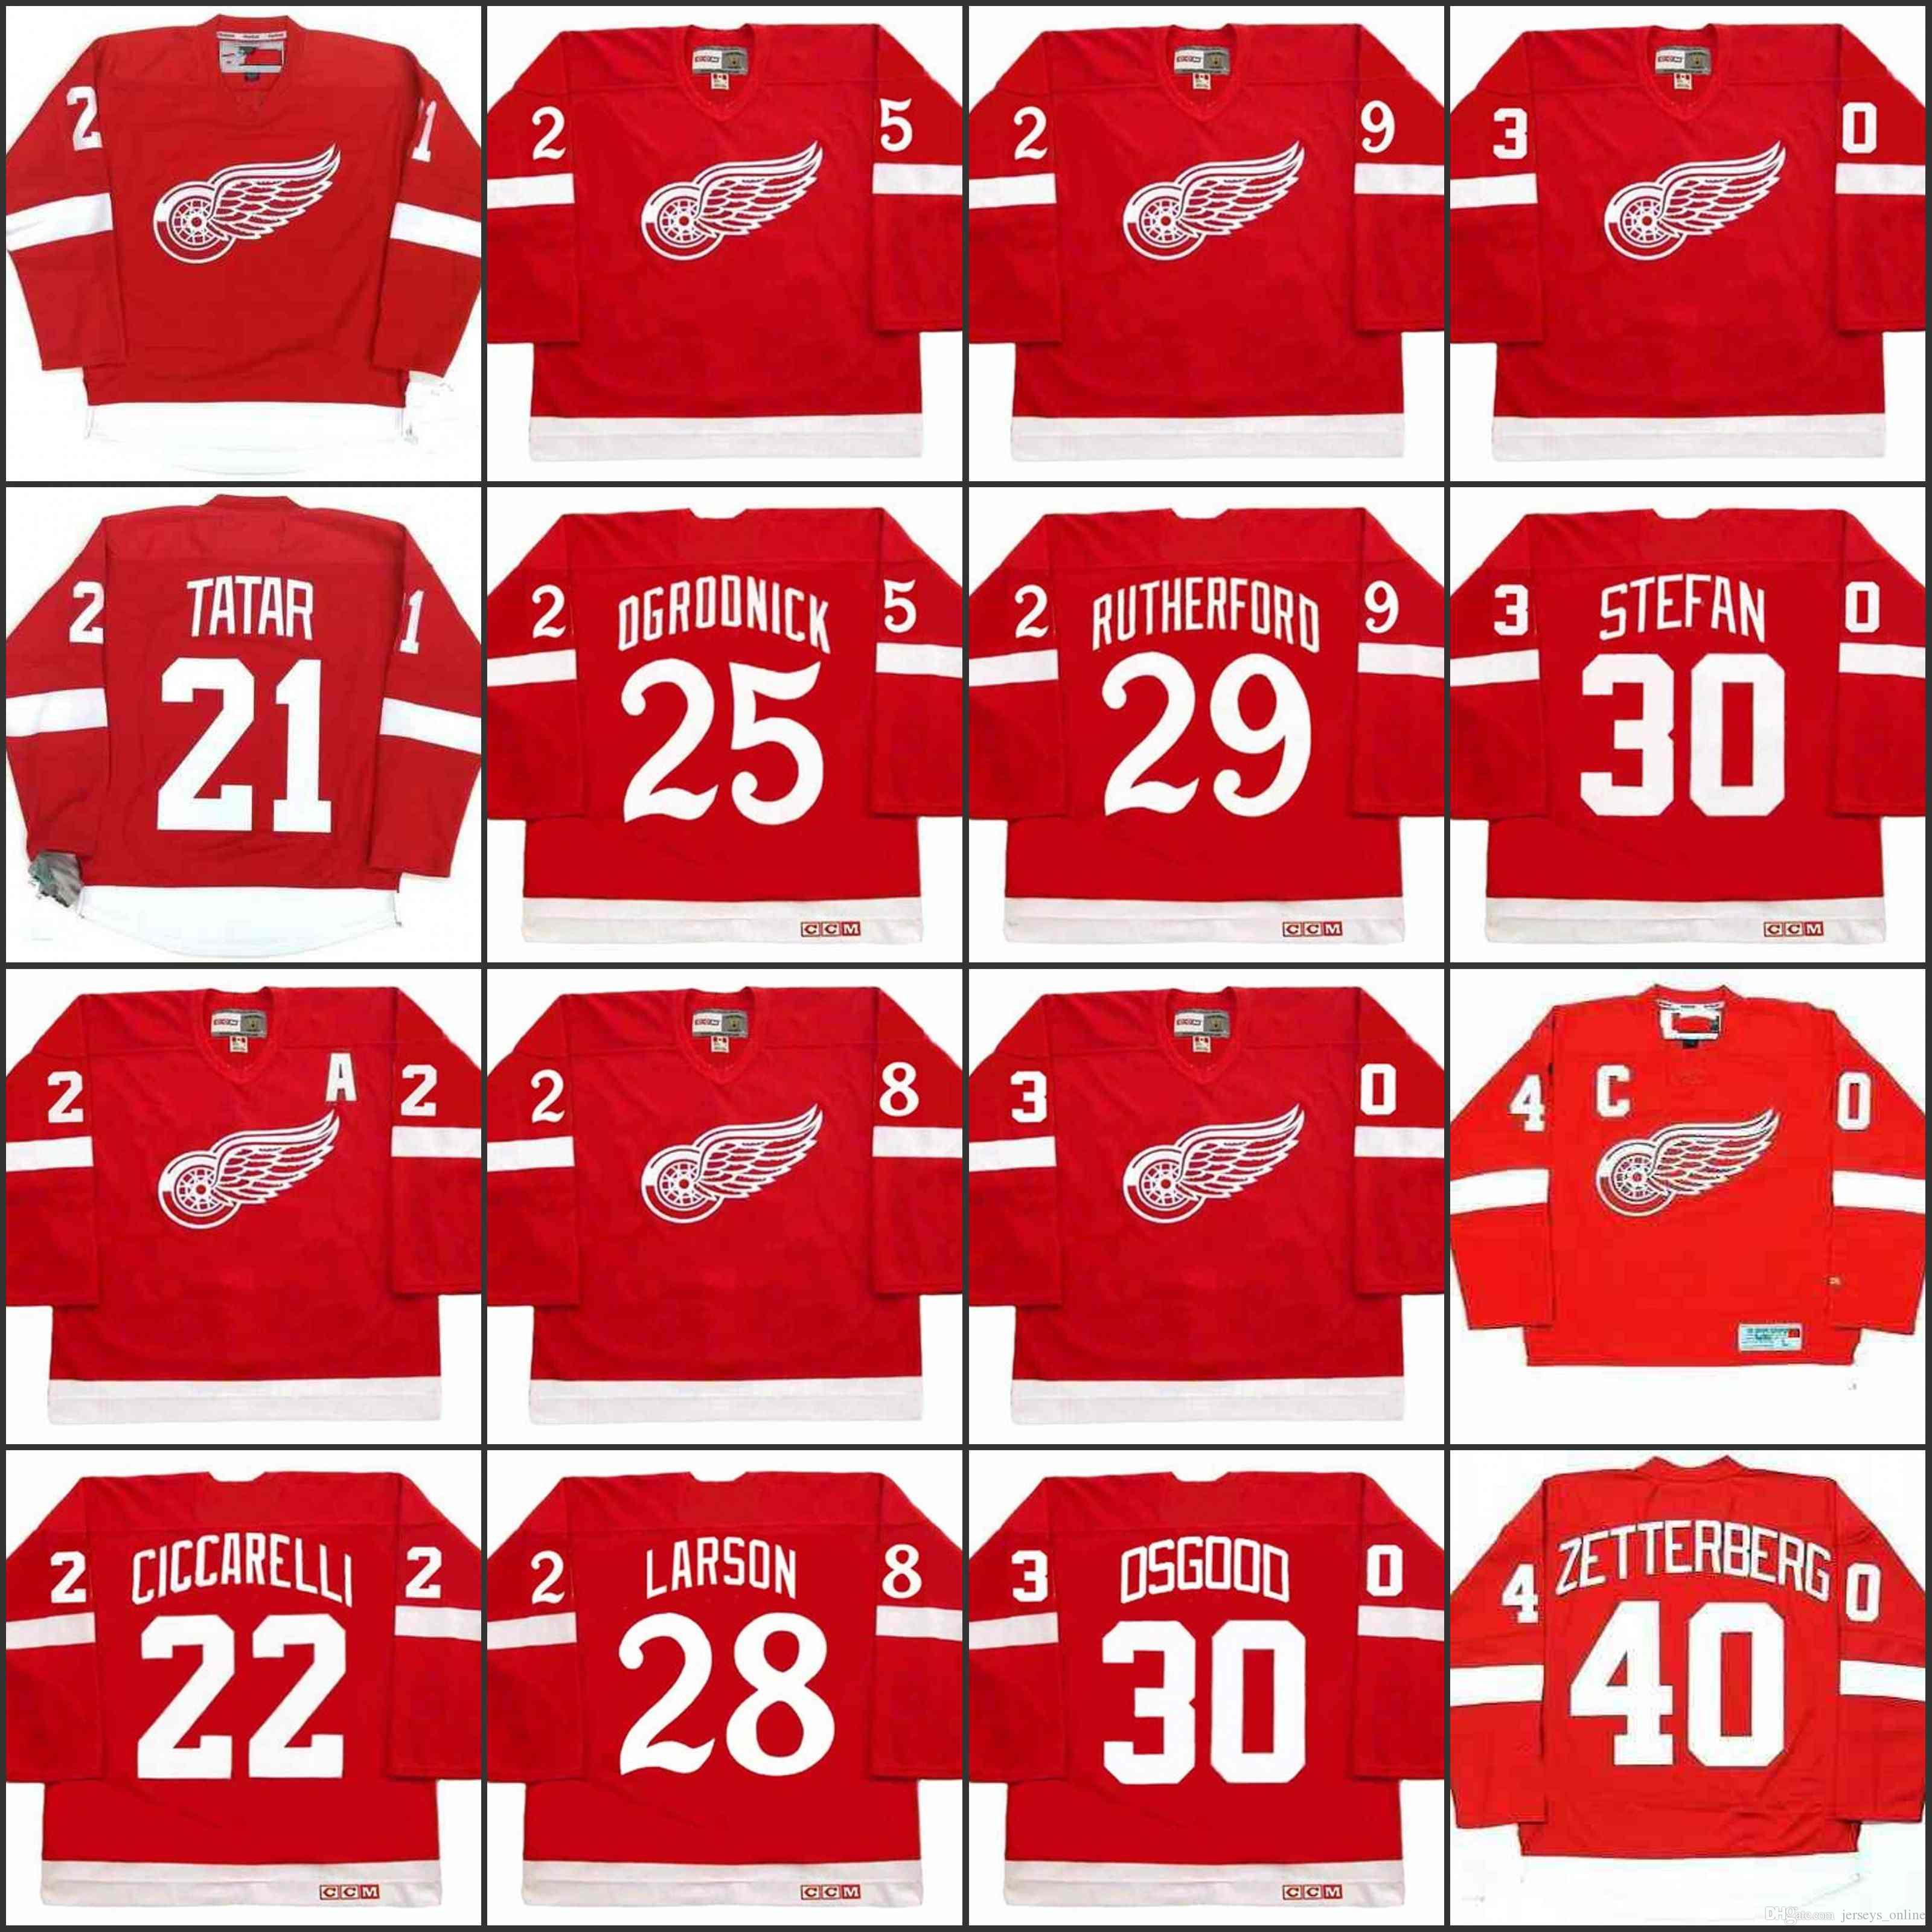 Detroit Red Wings 21 TOMAS TATAR 22 DINO CICCARELLI 25 JOHN OGRODNICK 28 ANNEAU LARSON 29 JIM RUTHERFORD Maillot 30 CHRIS OSGOOD